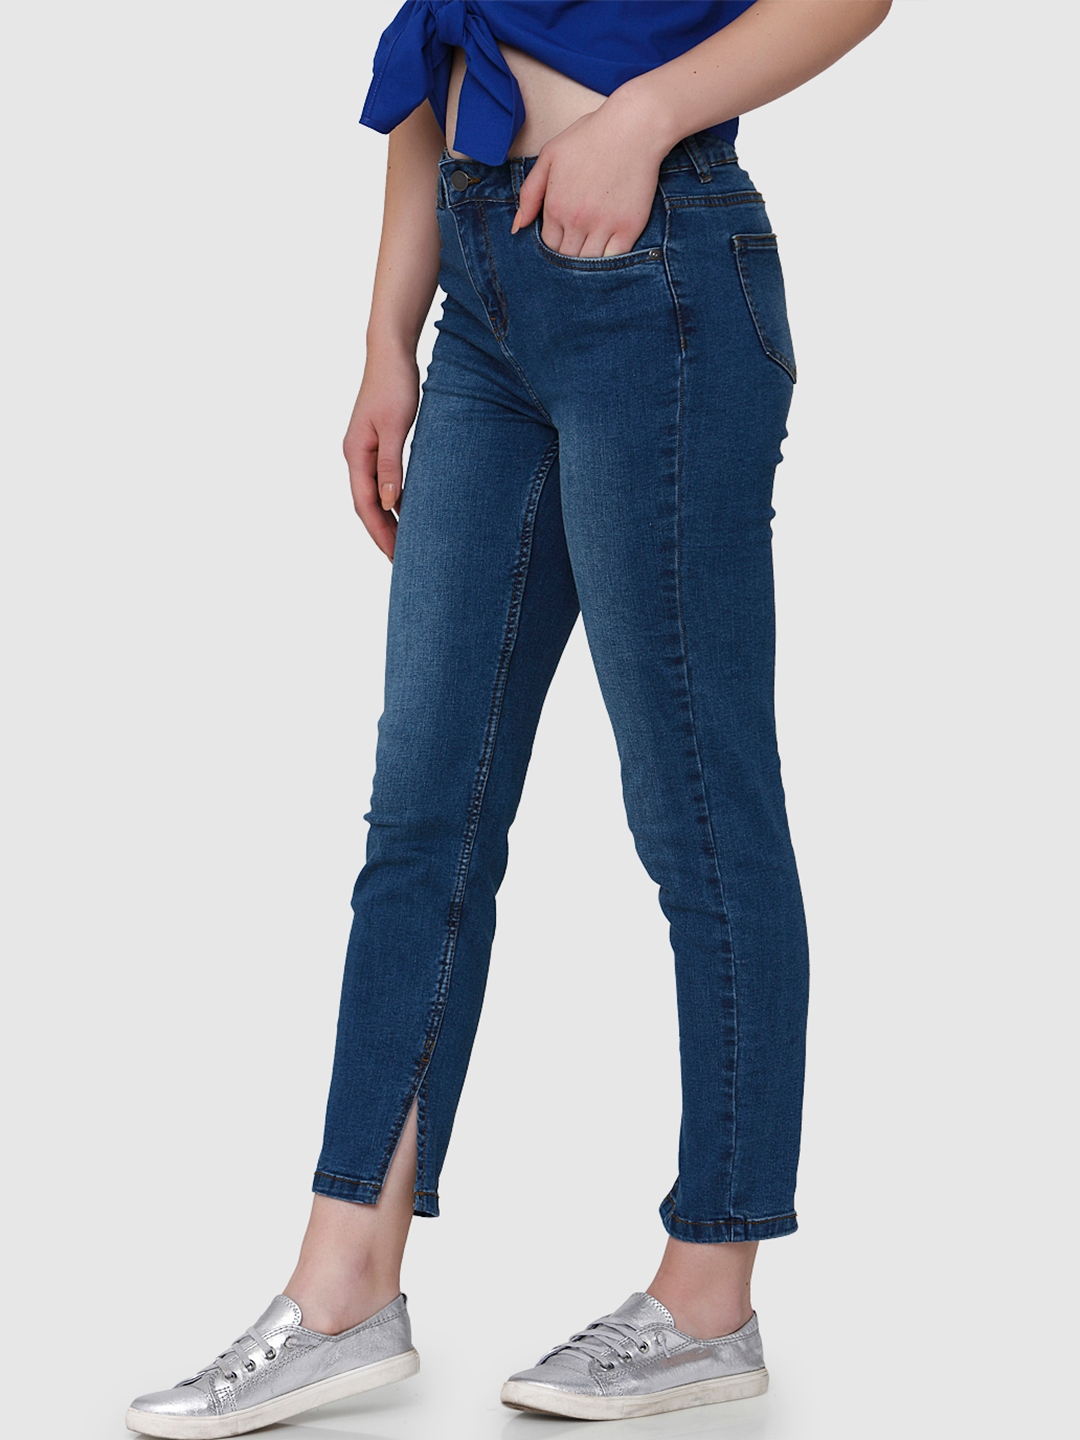 5acb699c67020 Vero Moda Women Blue Regular Fit High-Rise Jeans